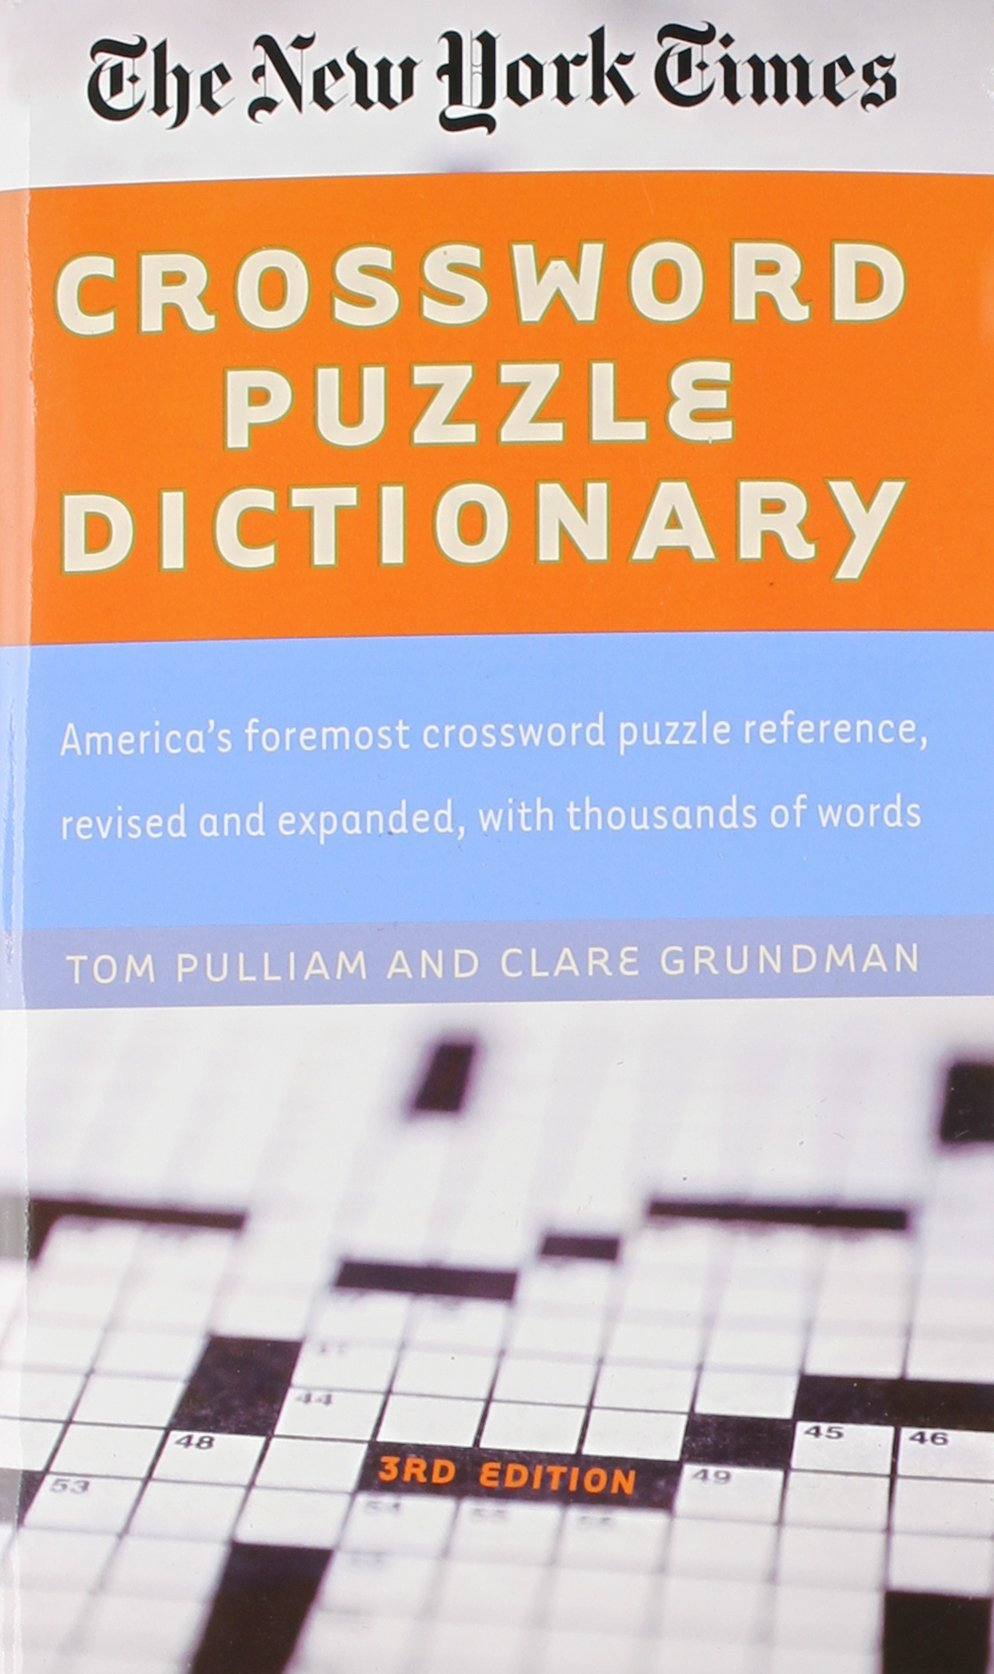 The New York Times Crossword Puzzle Dictionary (Puzzles u0026 Games Reference Guides) Tom Pulliam Clare Grundman 9780812931228 Amazon.com Books  sc 1 st  Amazon.com & The New York Times Crossword Puzzle Dictionary (Puzzles u0026 Games ... 25forcollege.com